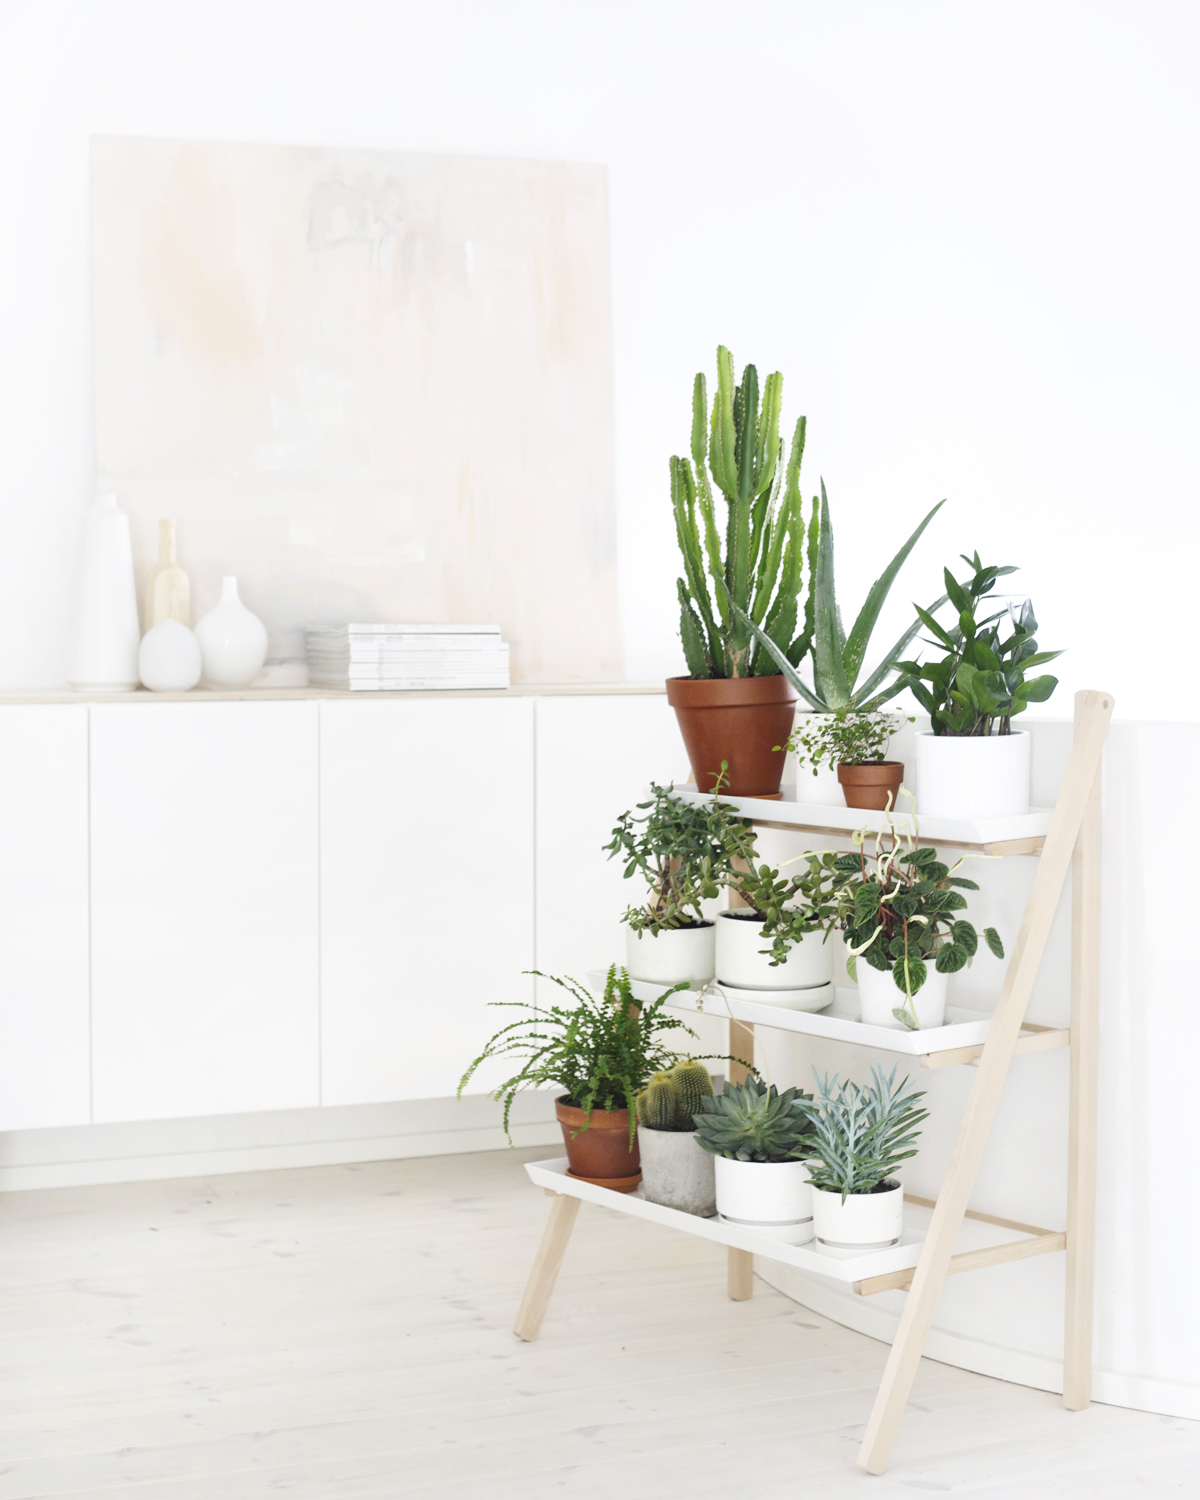 T d c interior styling indoor plants - Corner shelf for plants ...